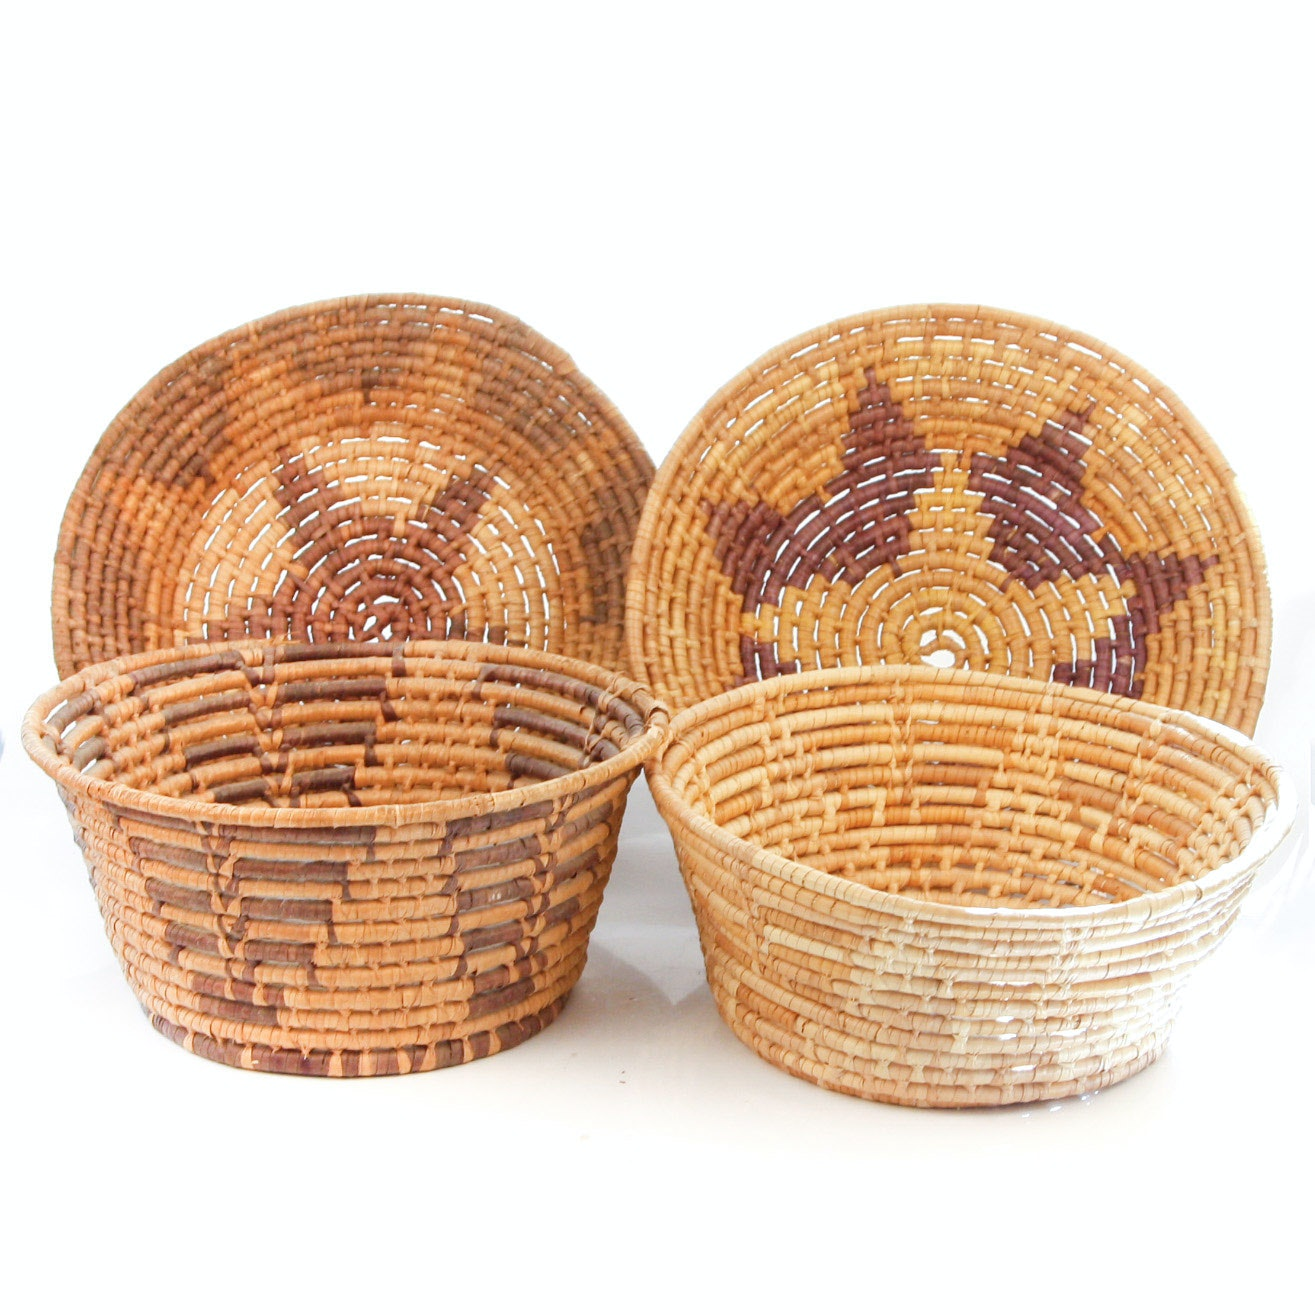 Collection of Four Woven Coiled Baskets